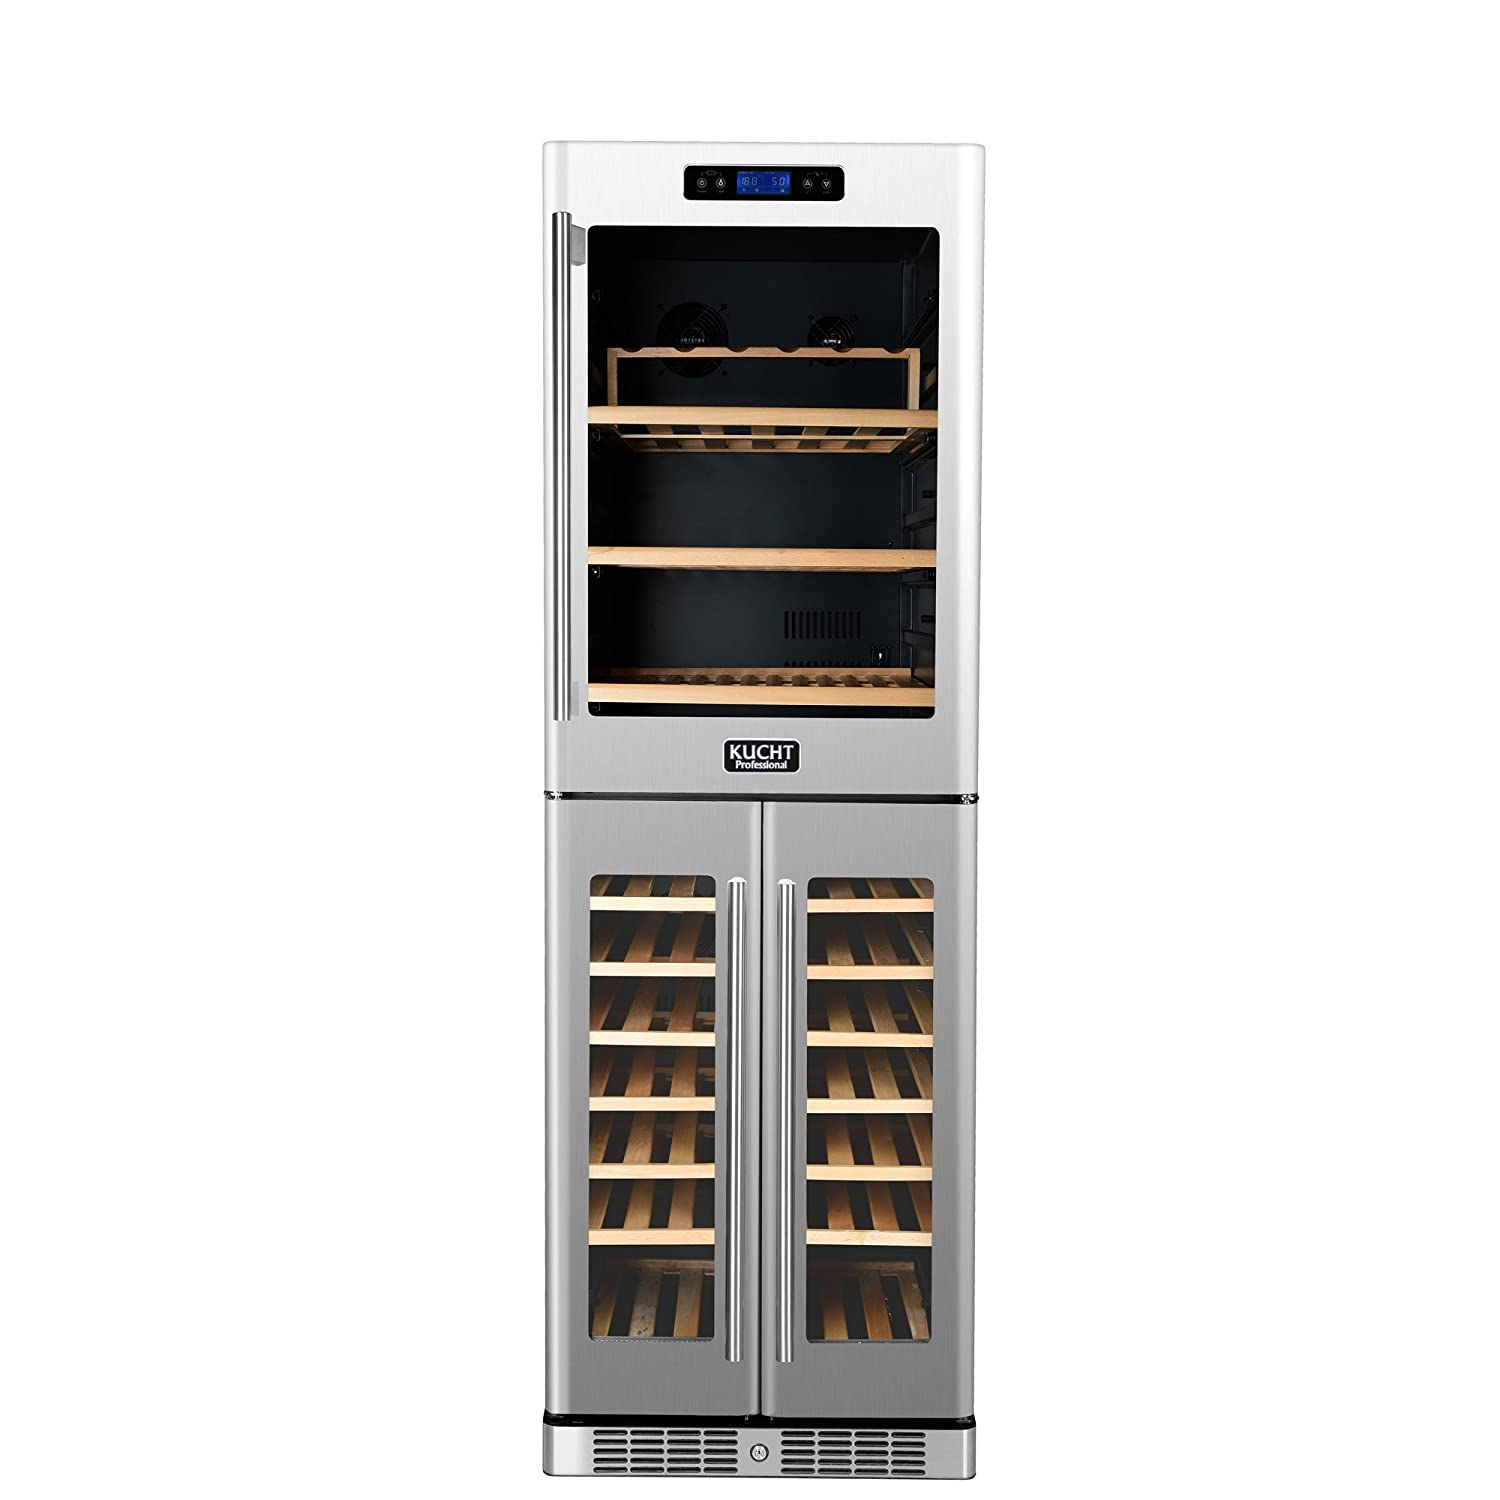 Kucht K430AVH33 121-Bottle Triple Zone Wine Cooler Built-In with Compressor, Stainless Steel Kucht Appliances